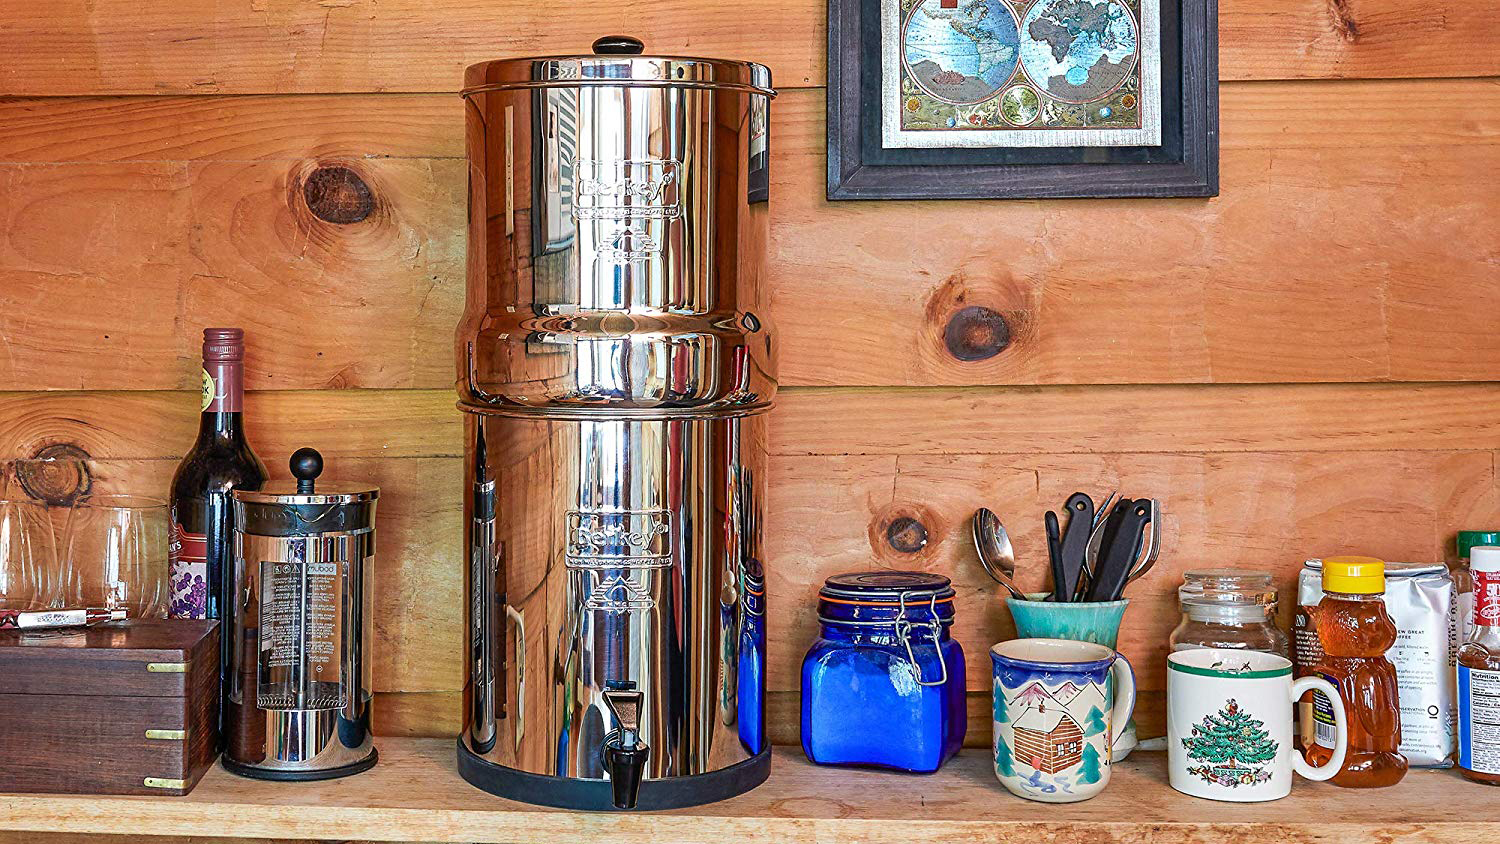 The best water filter jugs 2019 | T3